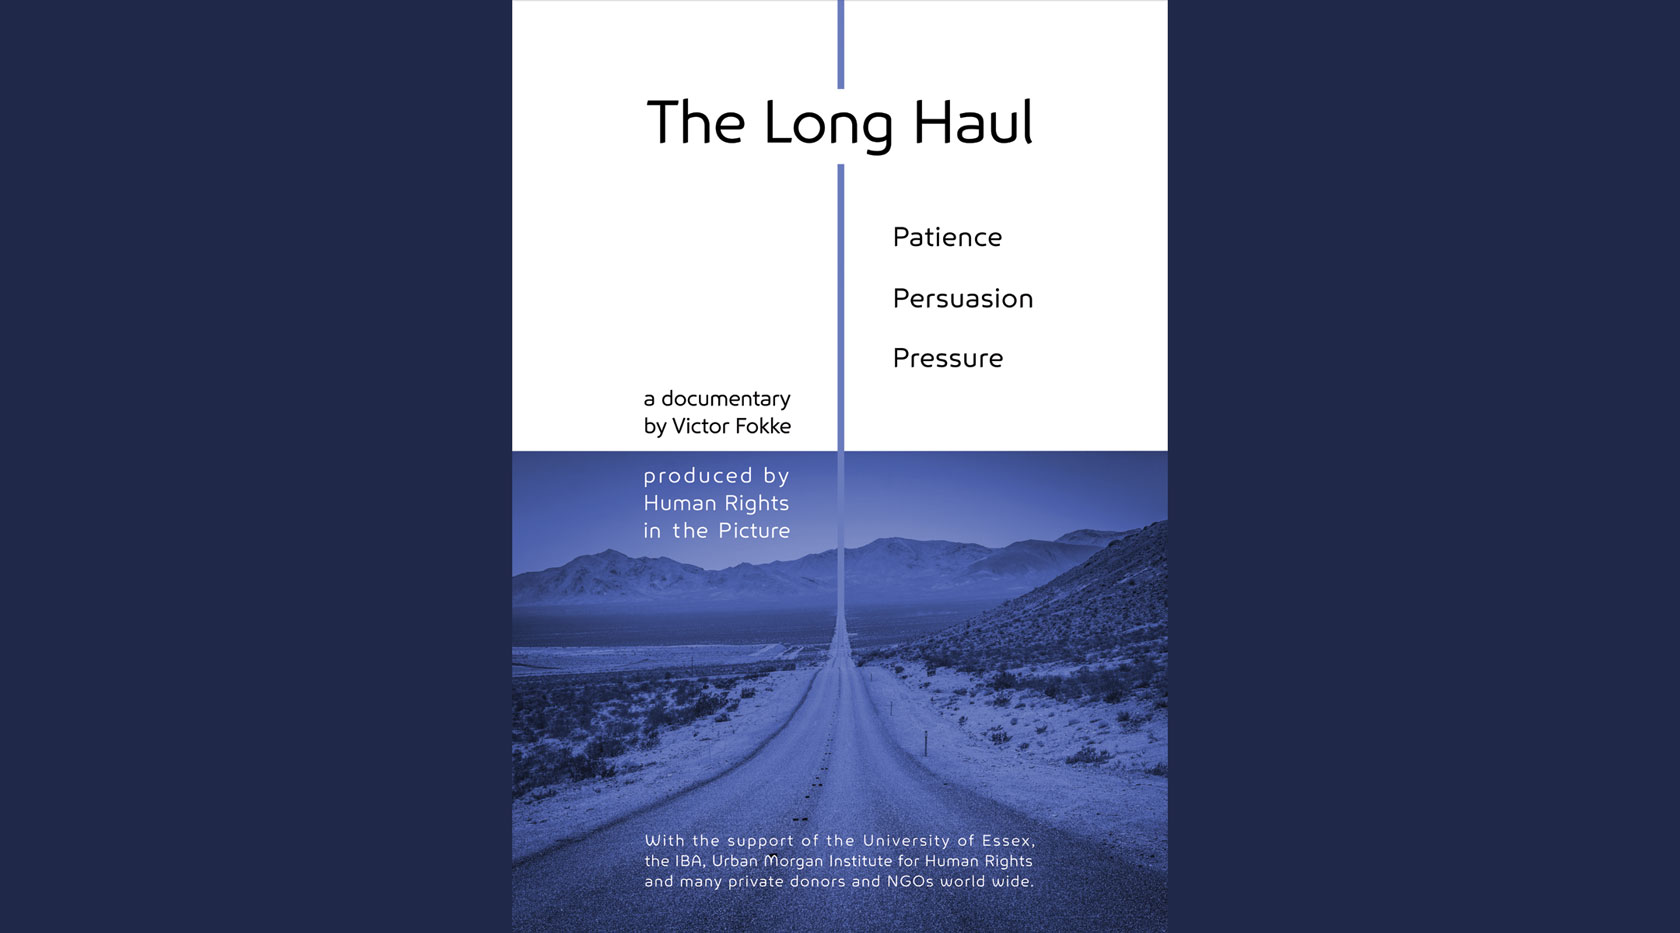 The Long Haul poster